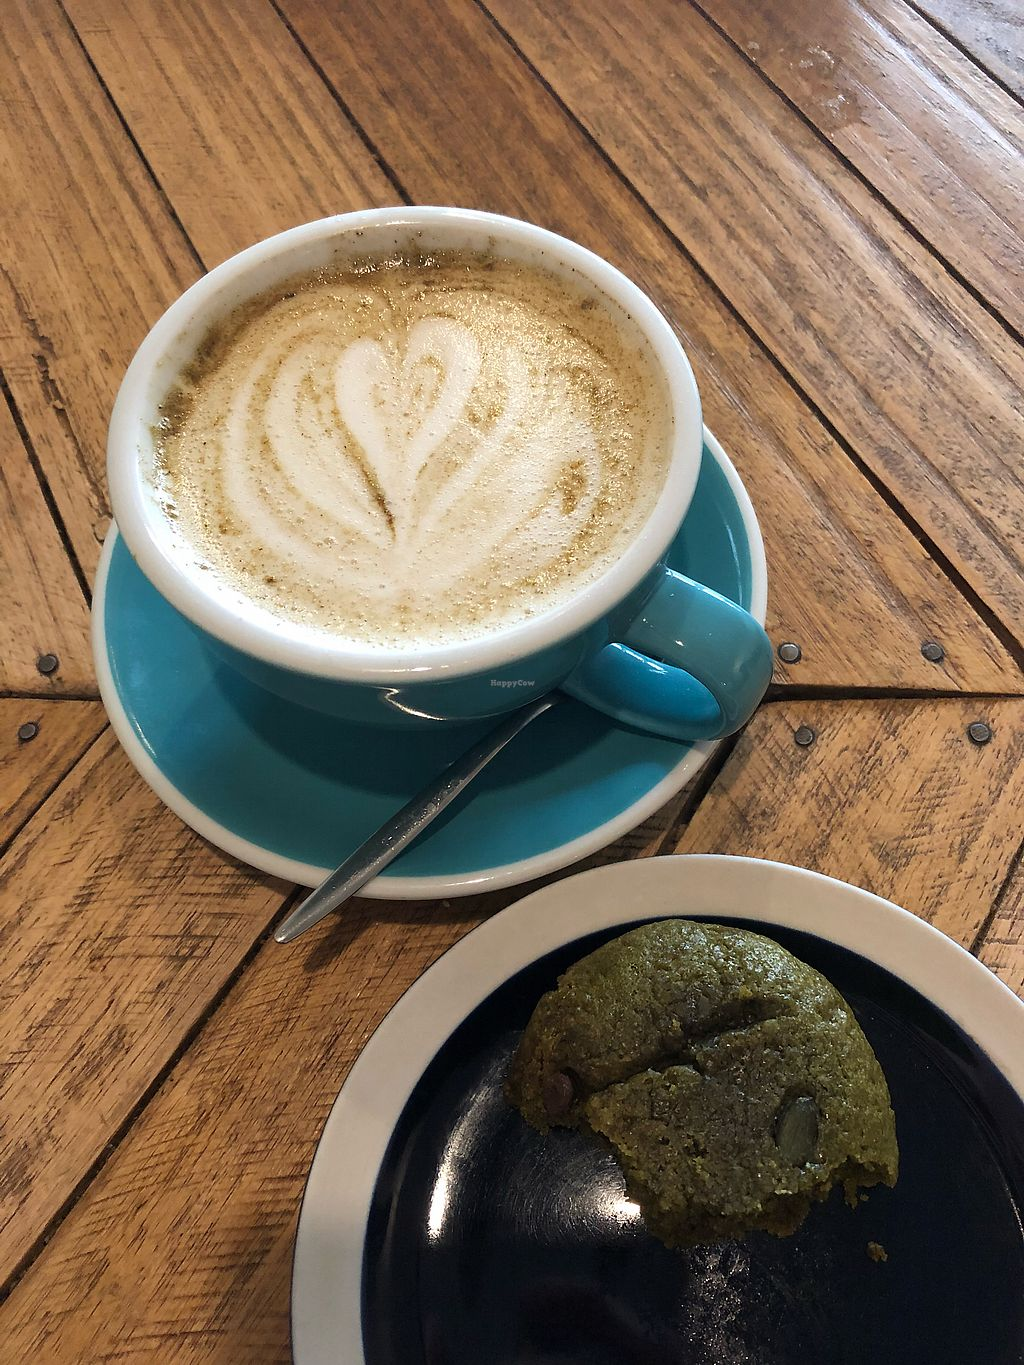 """Photo of Le Labo  by <a href=""""/members/profile/_hael"""">_hael</a> <br/>Chai /w Oat Milk & Matcha Cookie <br/> February 14, 2018  - <a href='/contact/abuse/image/100827/359267'>Report</a>"""